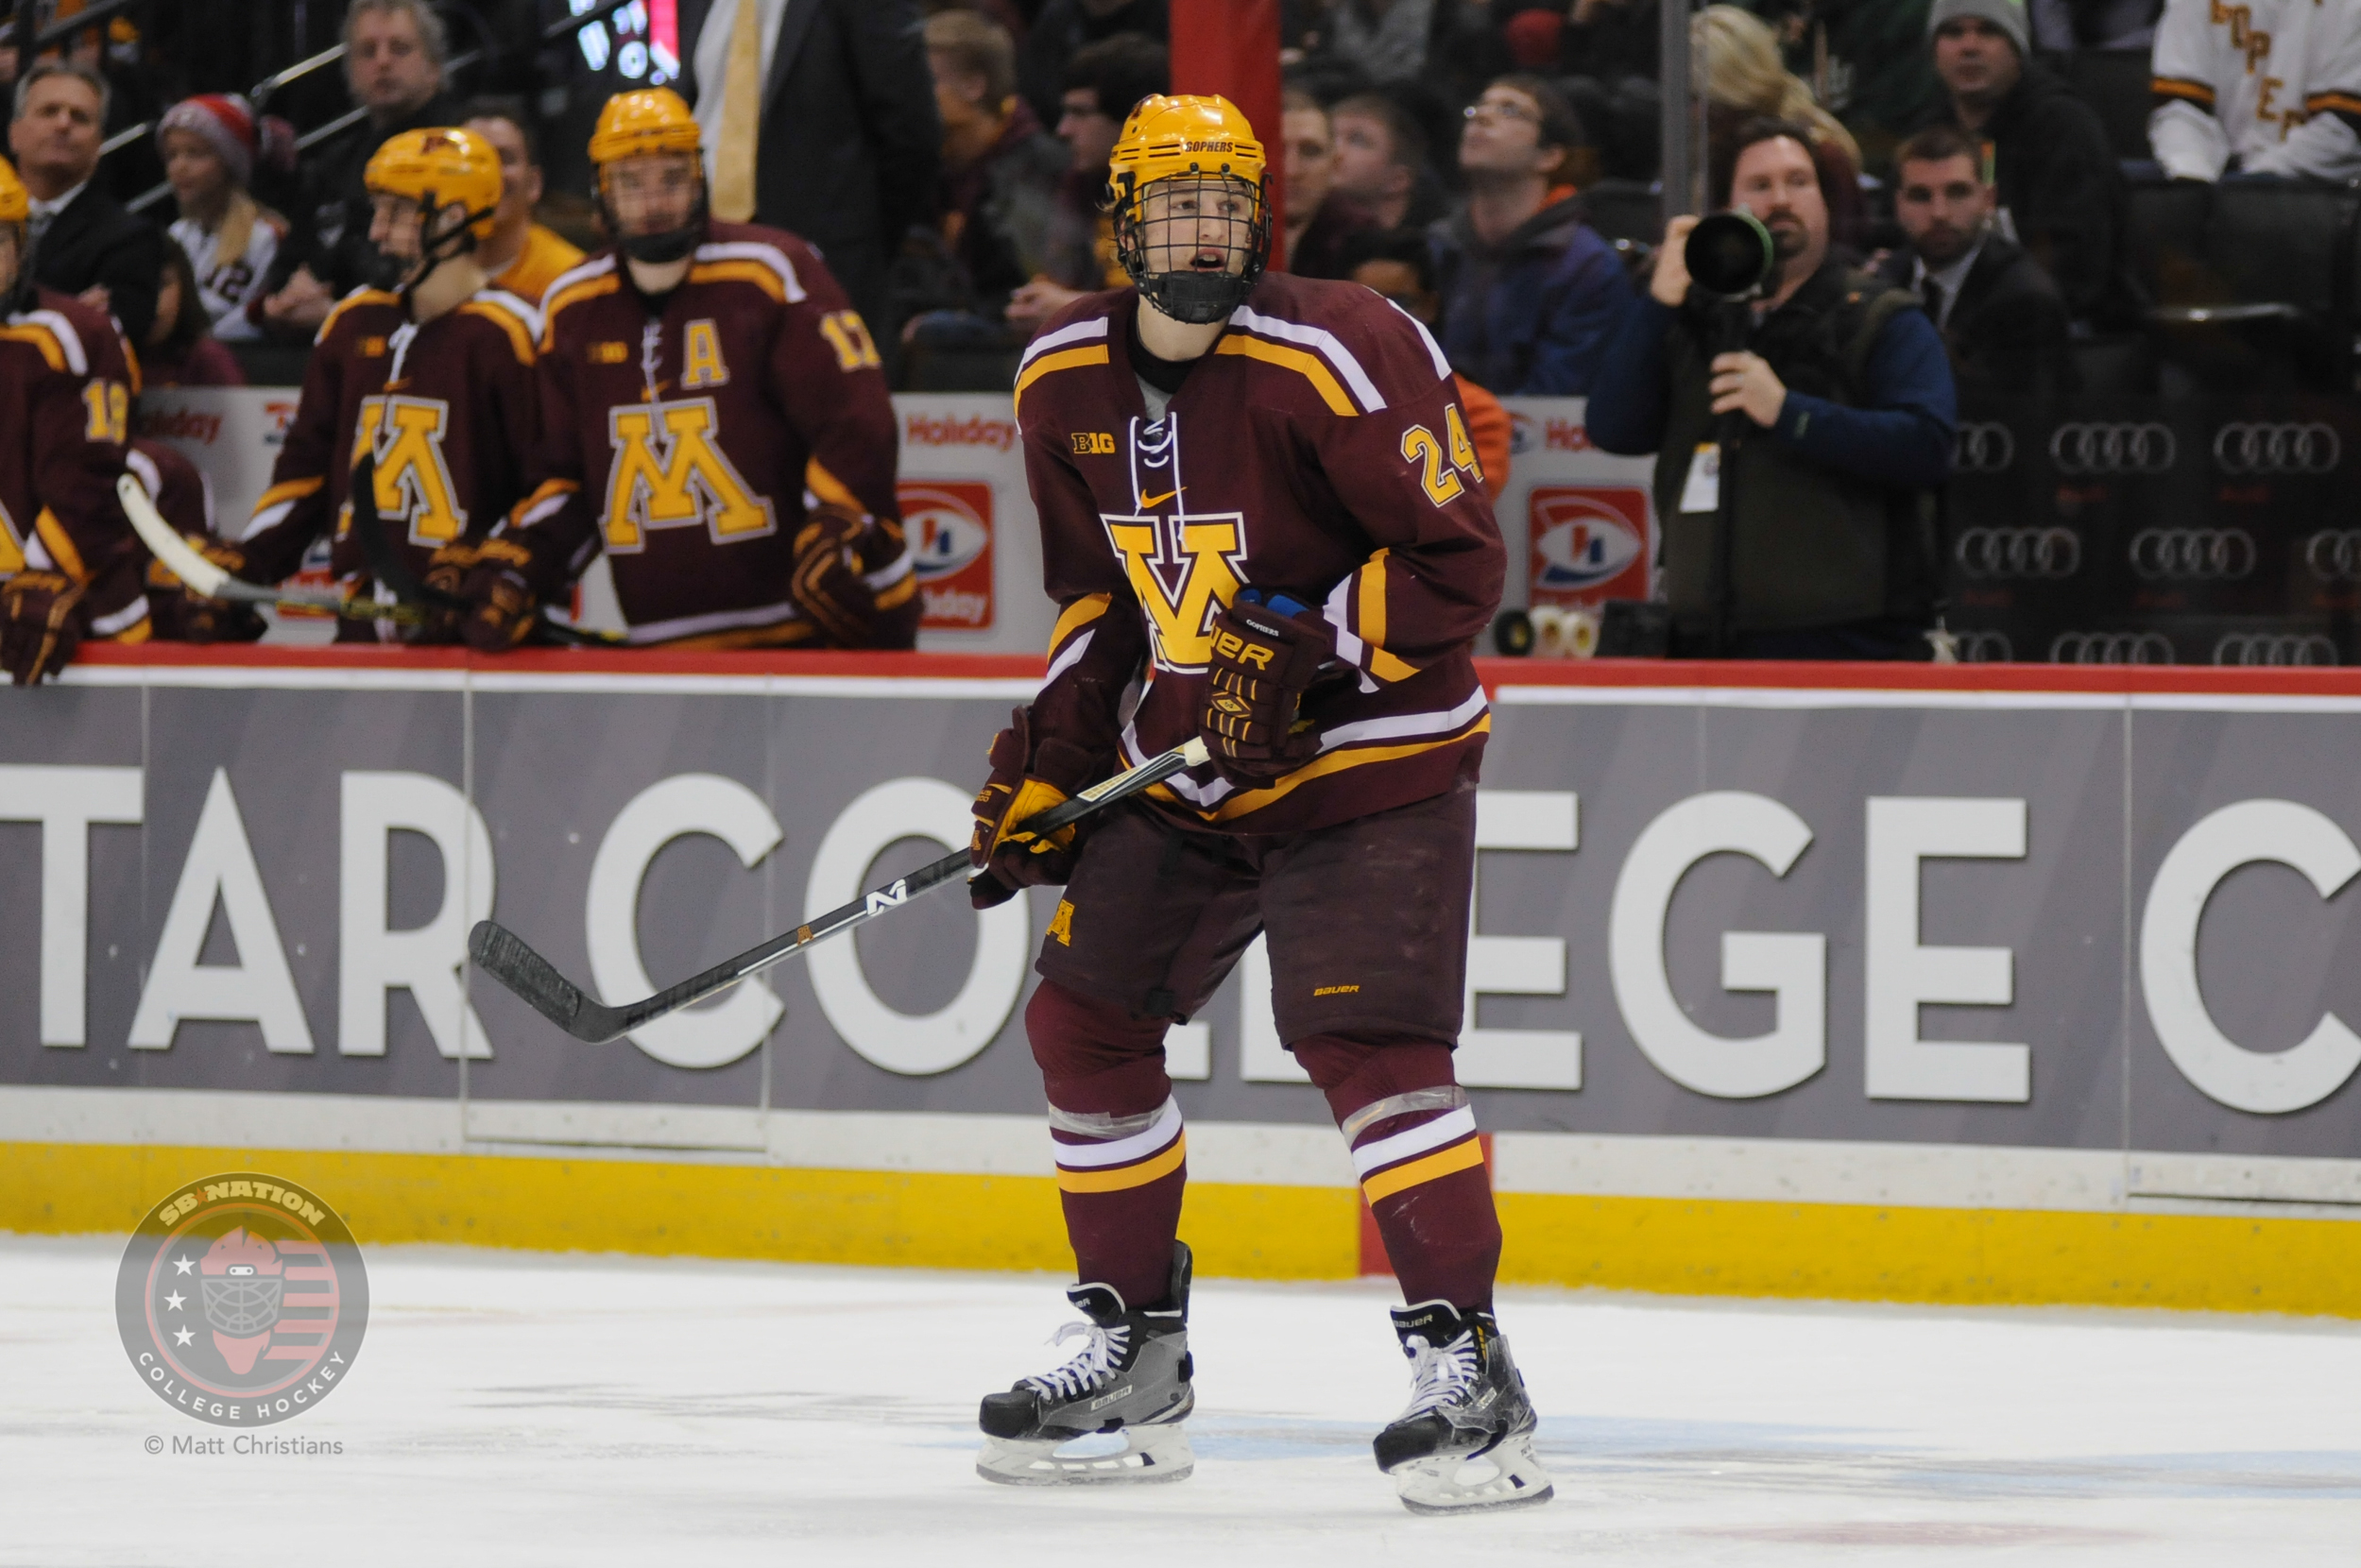 BIG10: Gophers Play Complete Game In A 7-1 Romp Over No. 12 Penn State